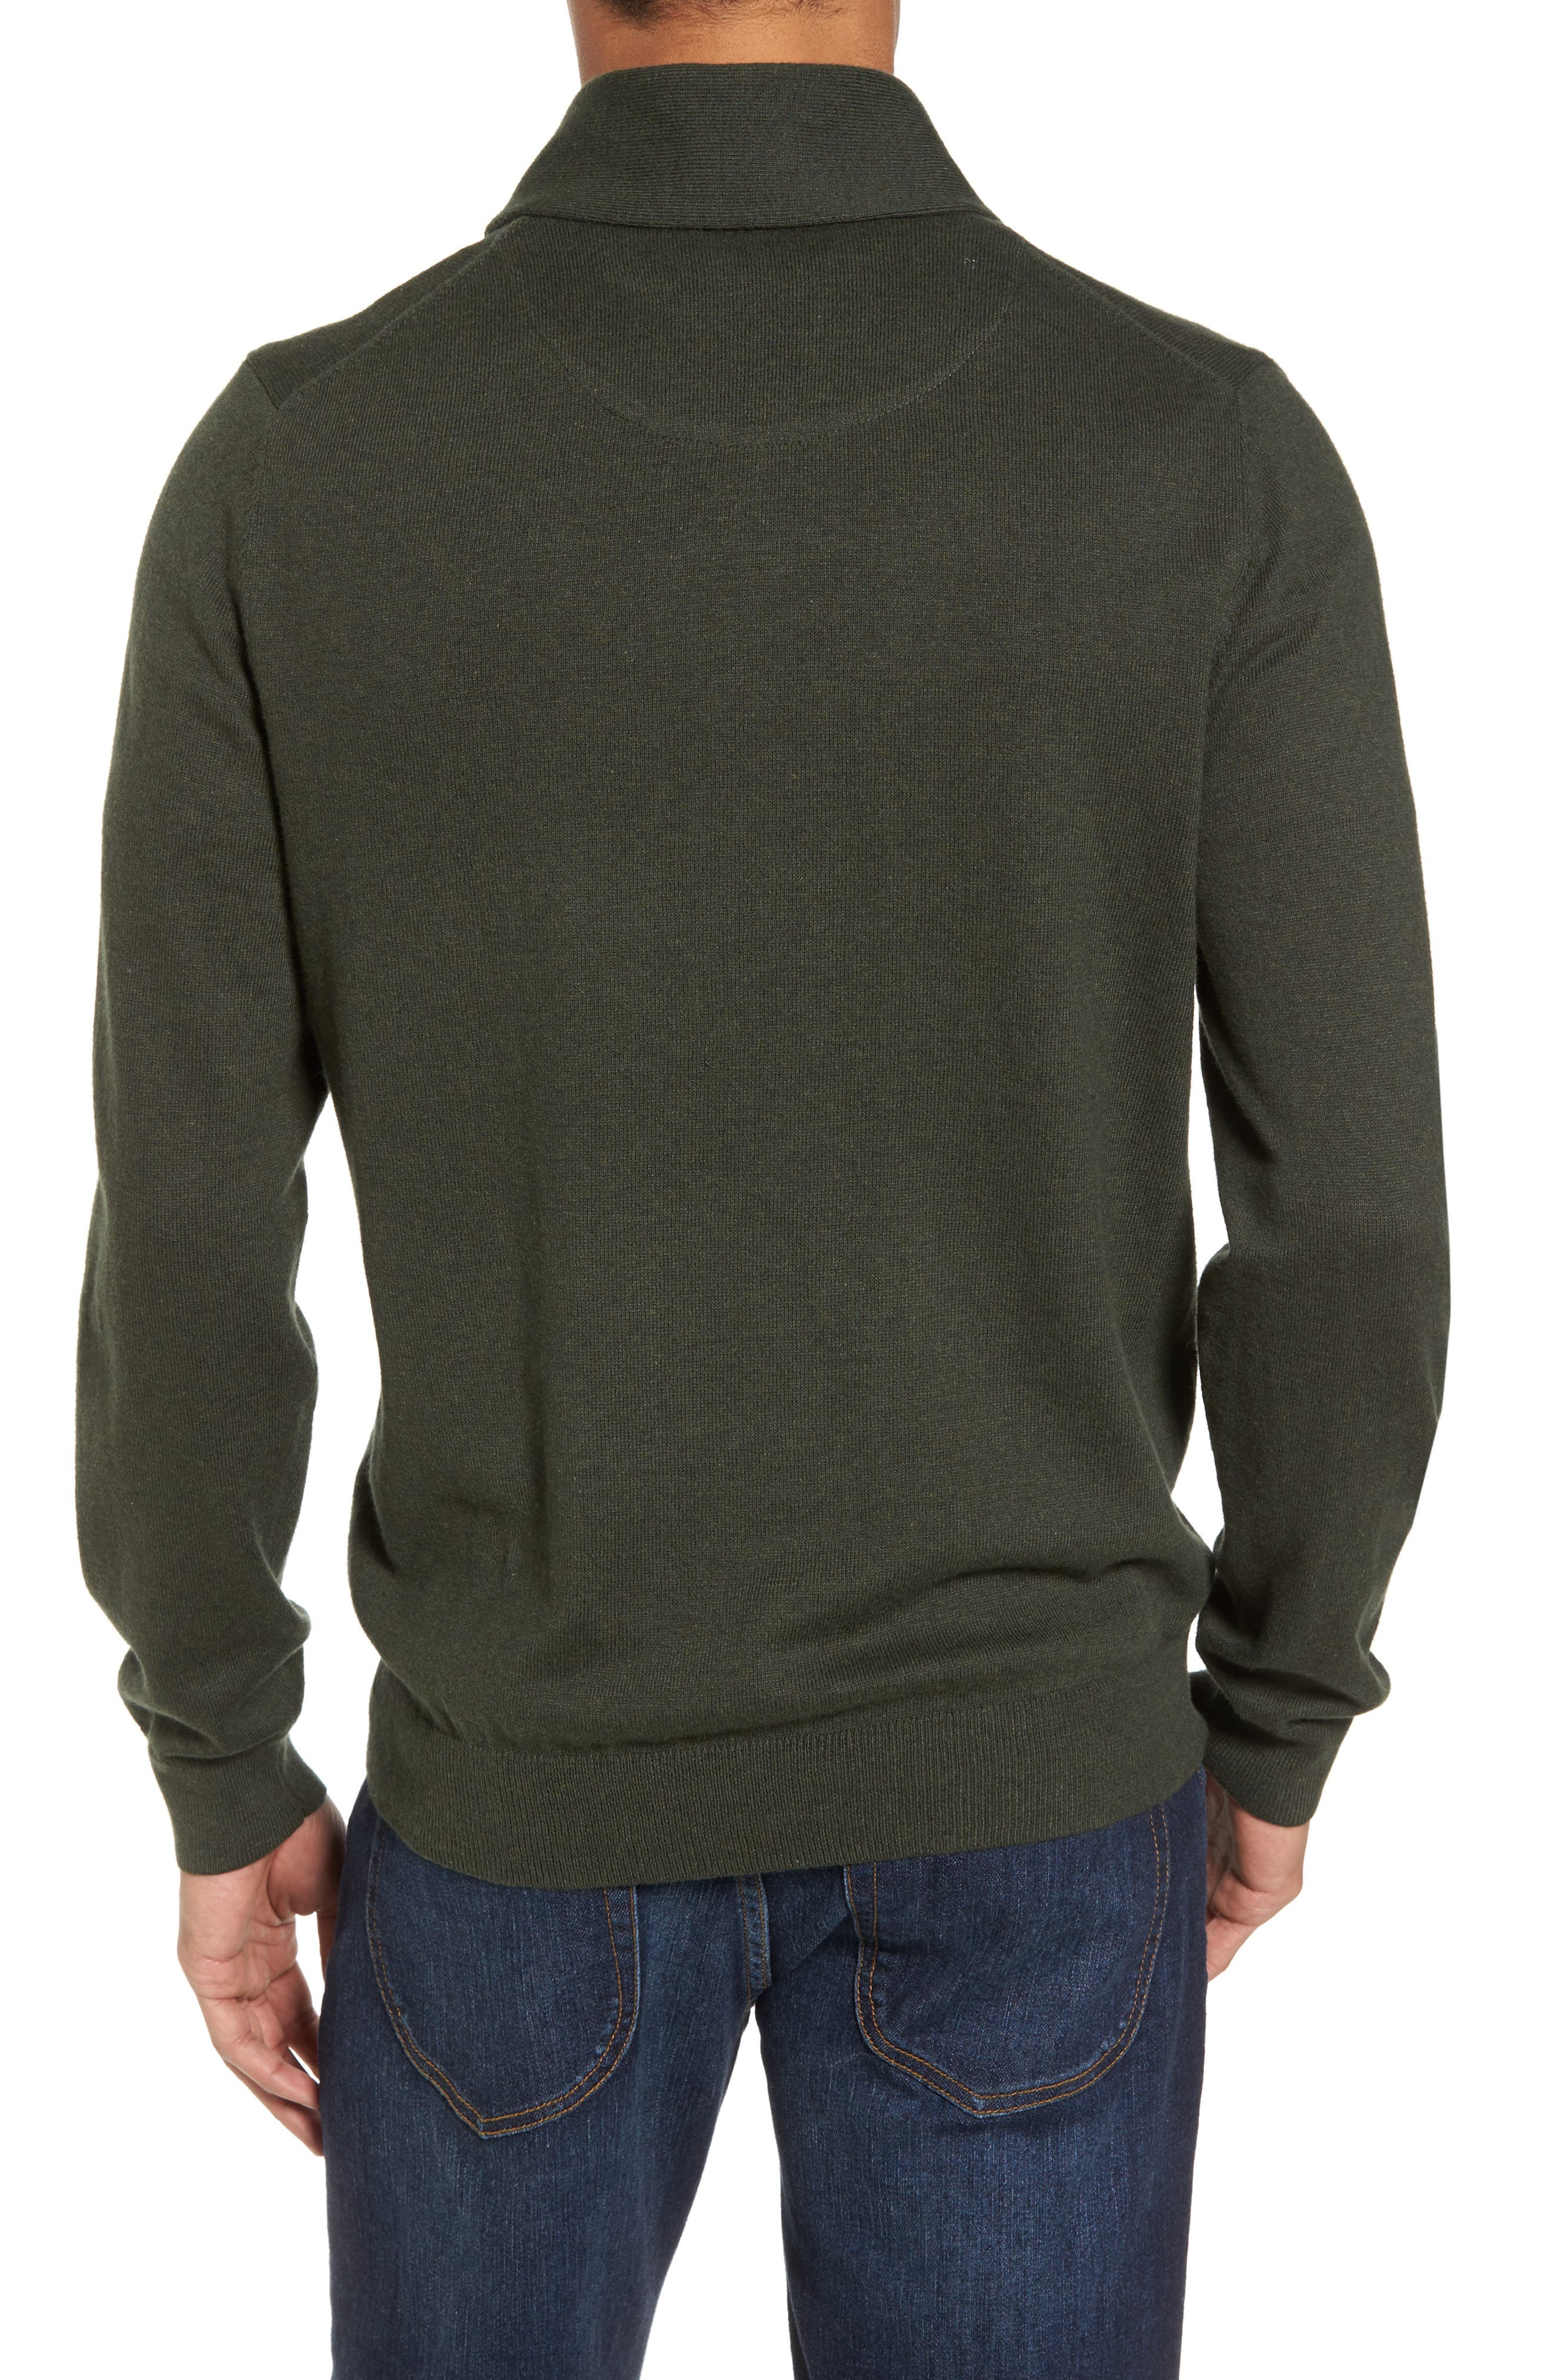 Cotton & Cashmere Shawl Collar Sweater,                             Alternate thumbnail 2, color,                             Green Deep Pine